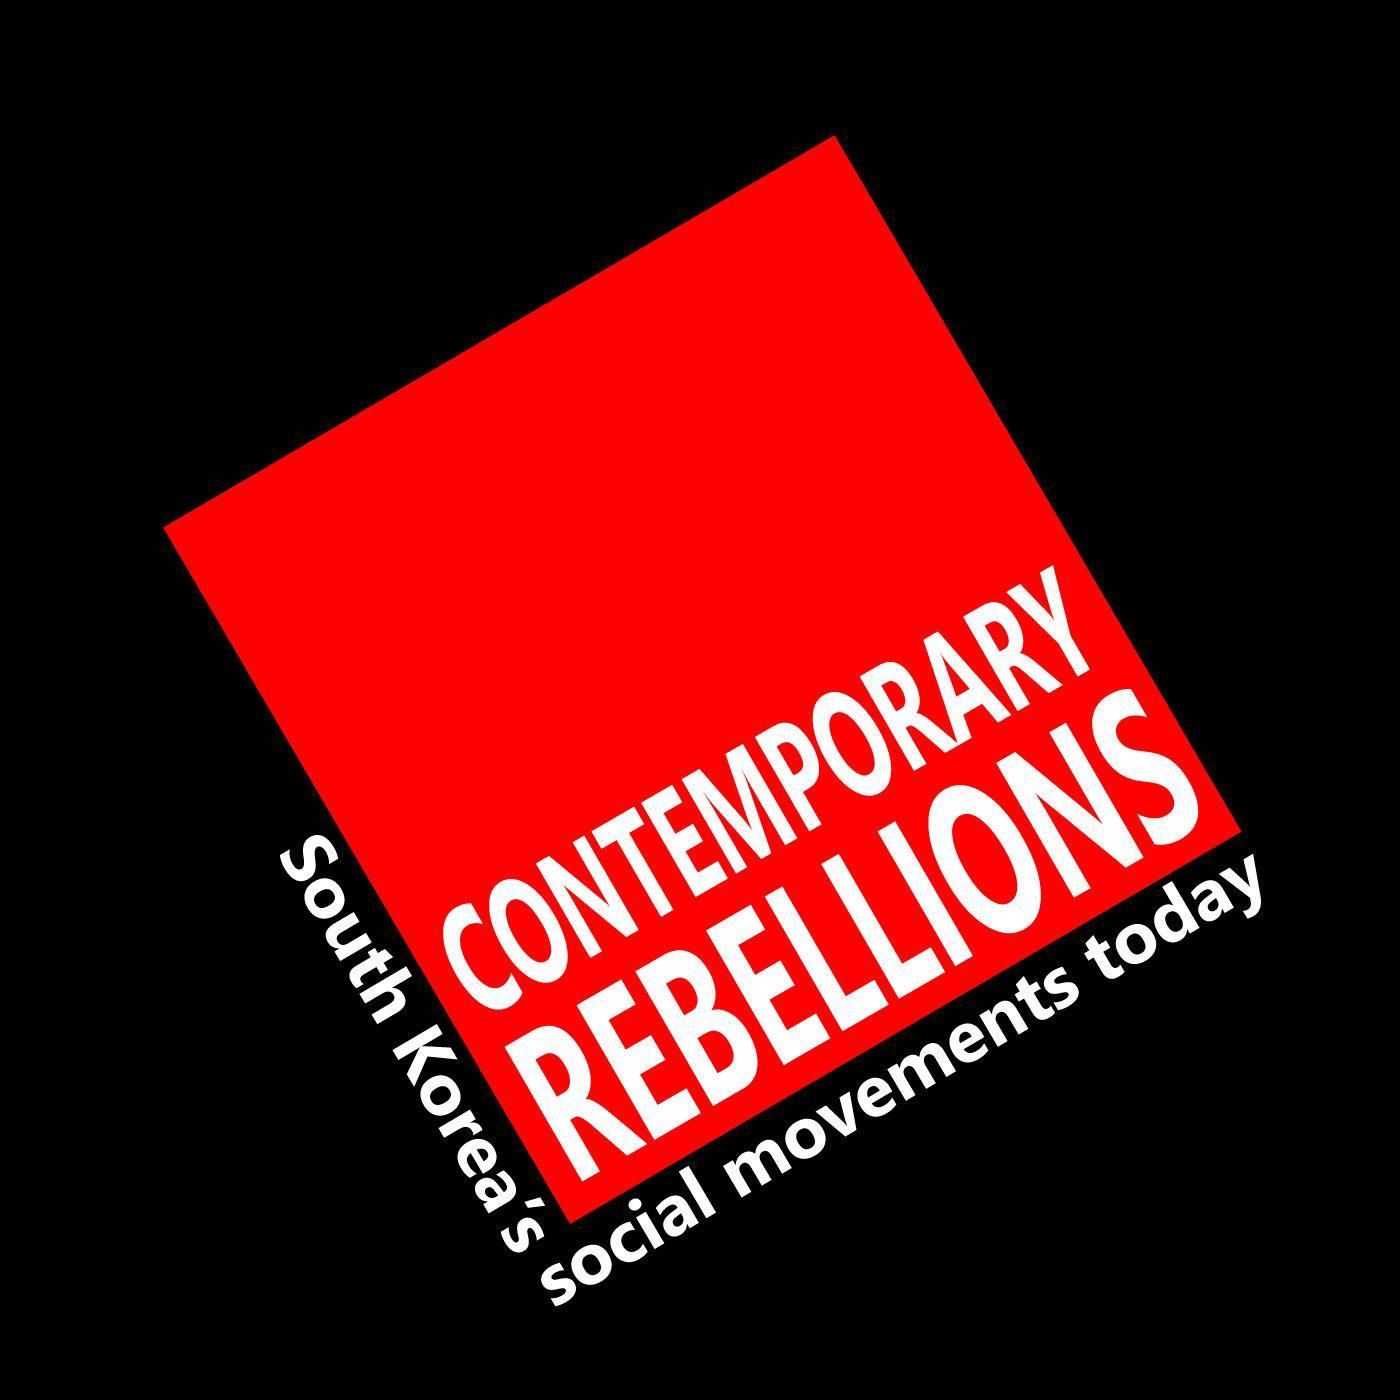 Redevelopment Resistance (Contemporary Rebellions: South Korean Social Movements Today Ep4)